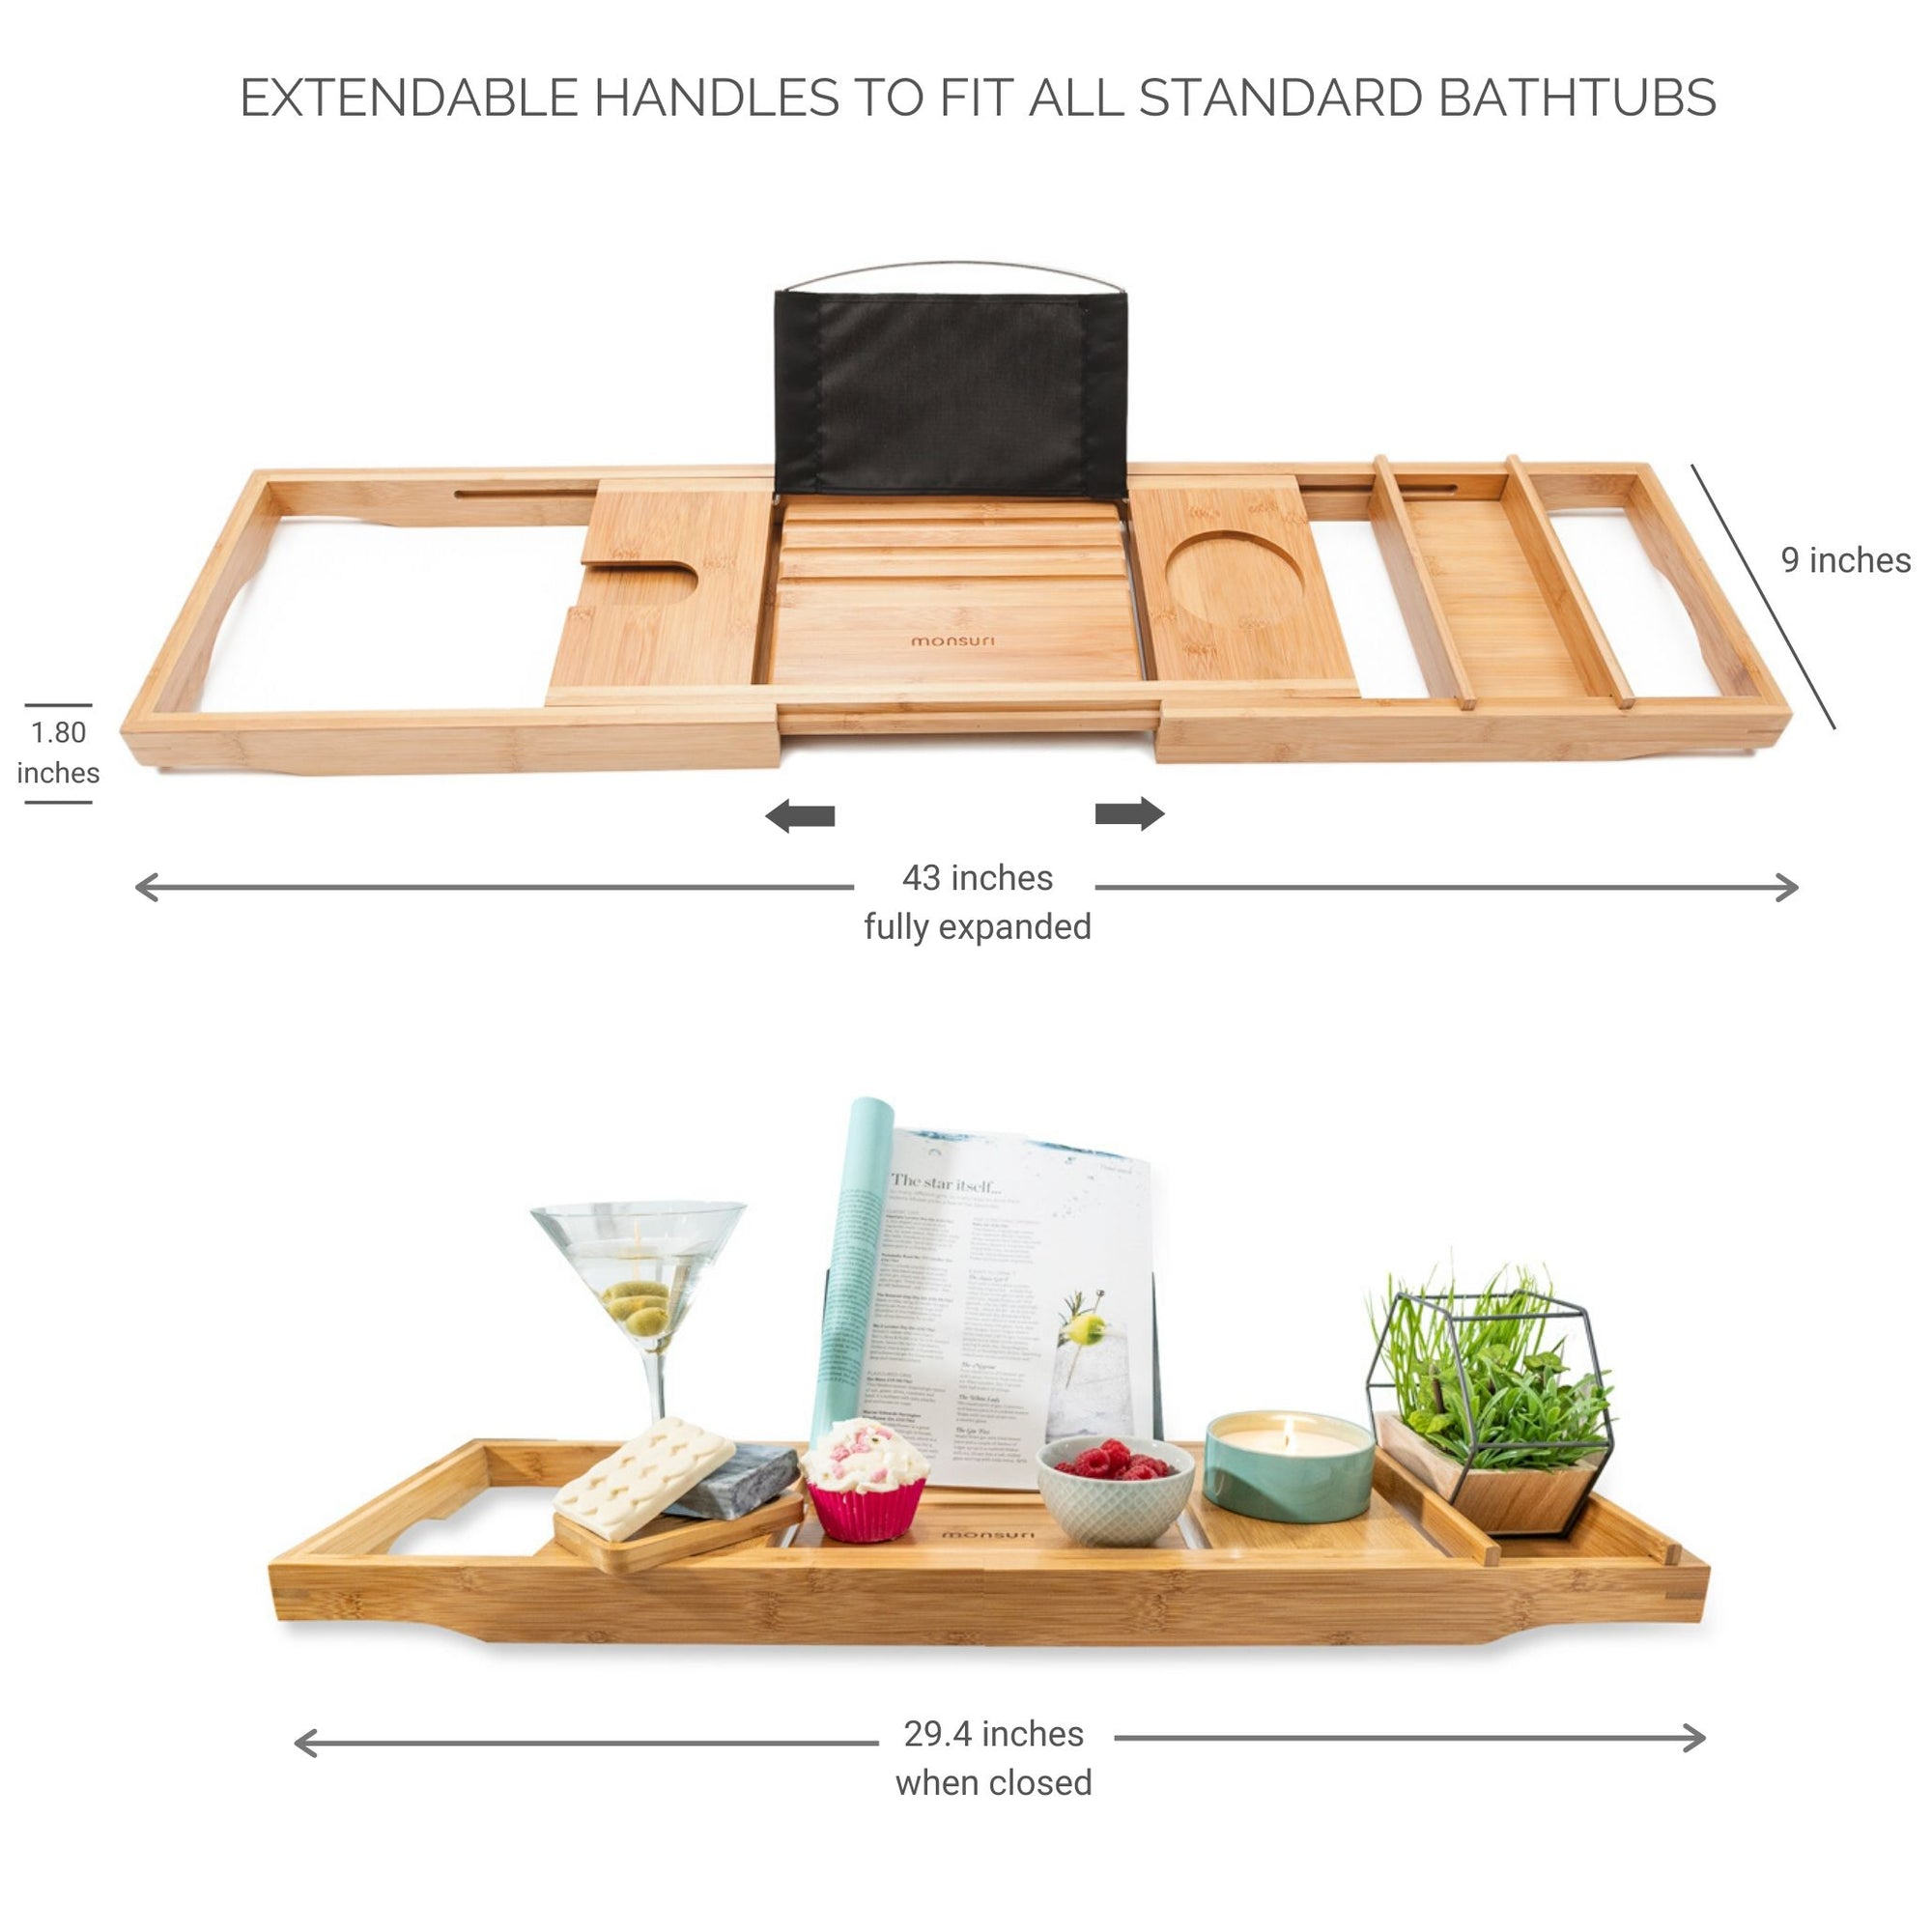 Best expandable bamboo bath-tub tray dimensions in inches